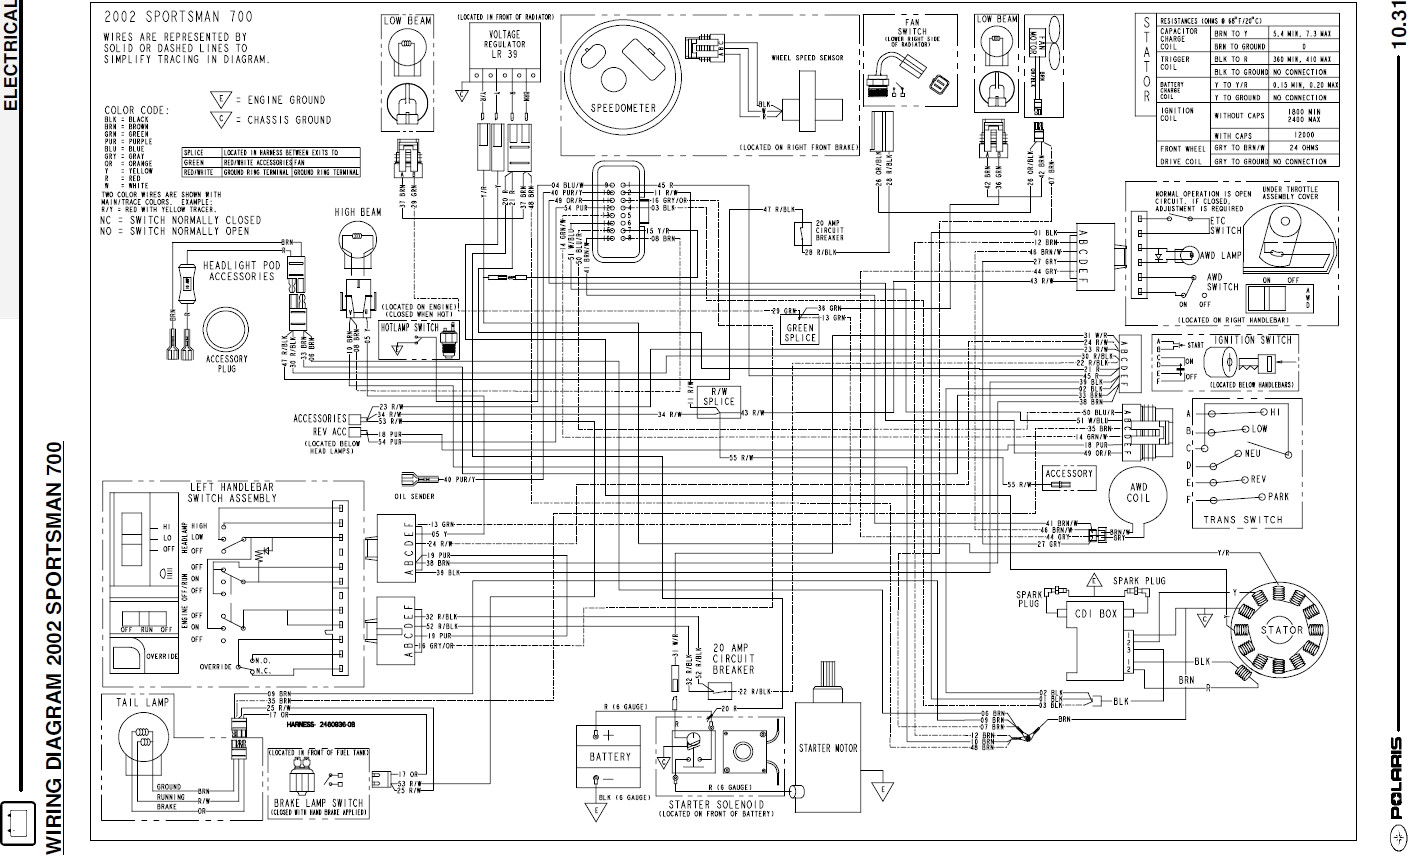 [ANLQ_8698]  2008 Sportsman 500 Wire Diagram Diagram Base Website Wire Diagram -  VENNDIAGRAMR.AISC-NET.IT | Wiring Diagram Polaris 2005 500 Ho |  | Diagram Base Website Full Edition - aisc